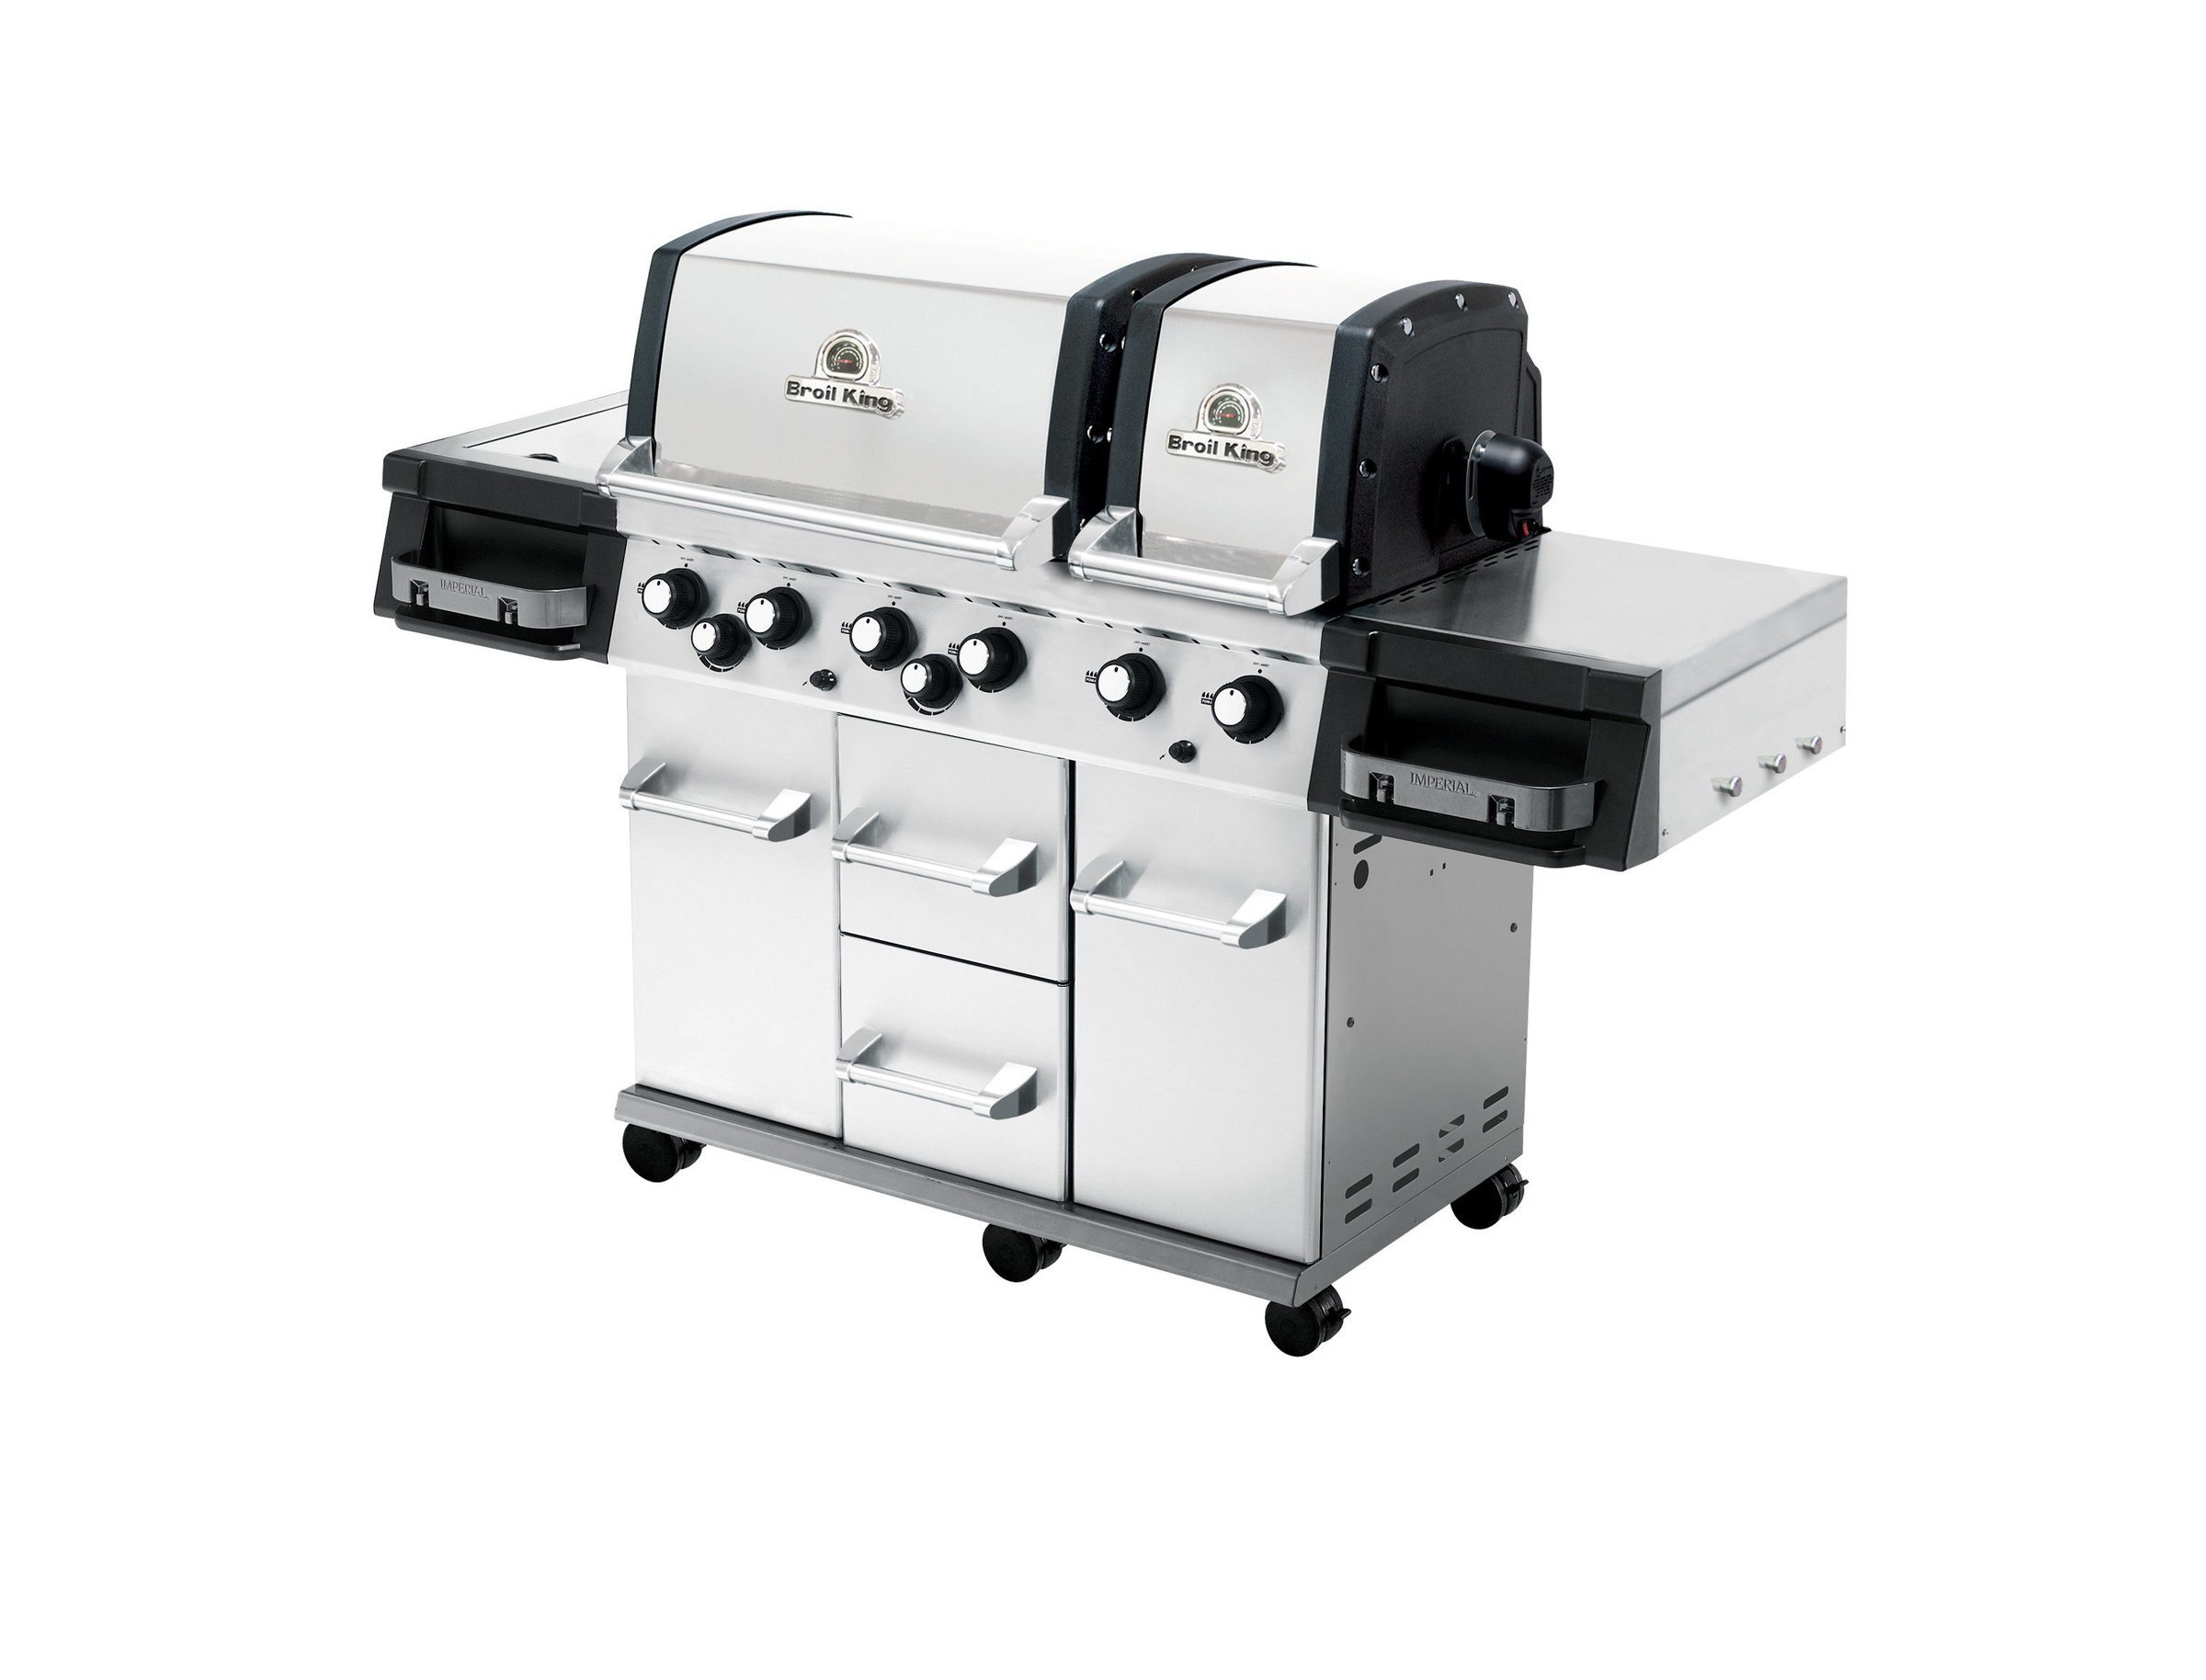 Broil King Imperial Xls 2016 Model